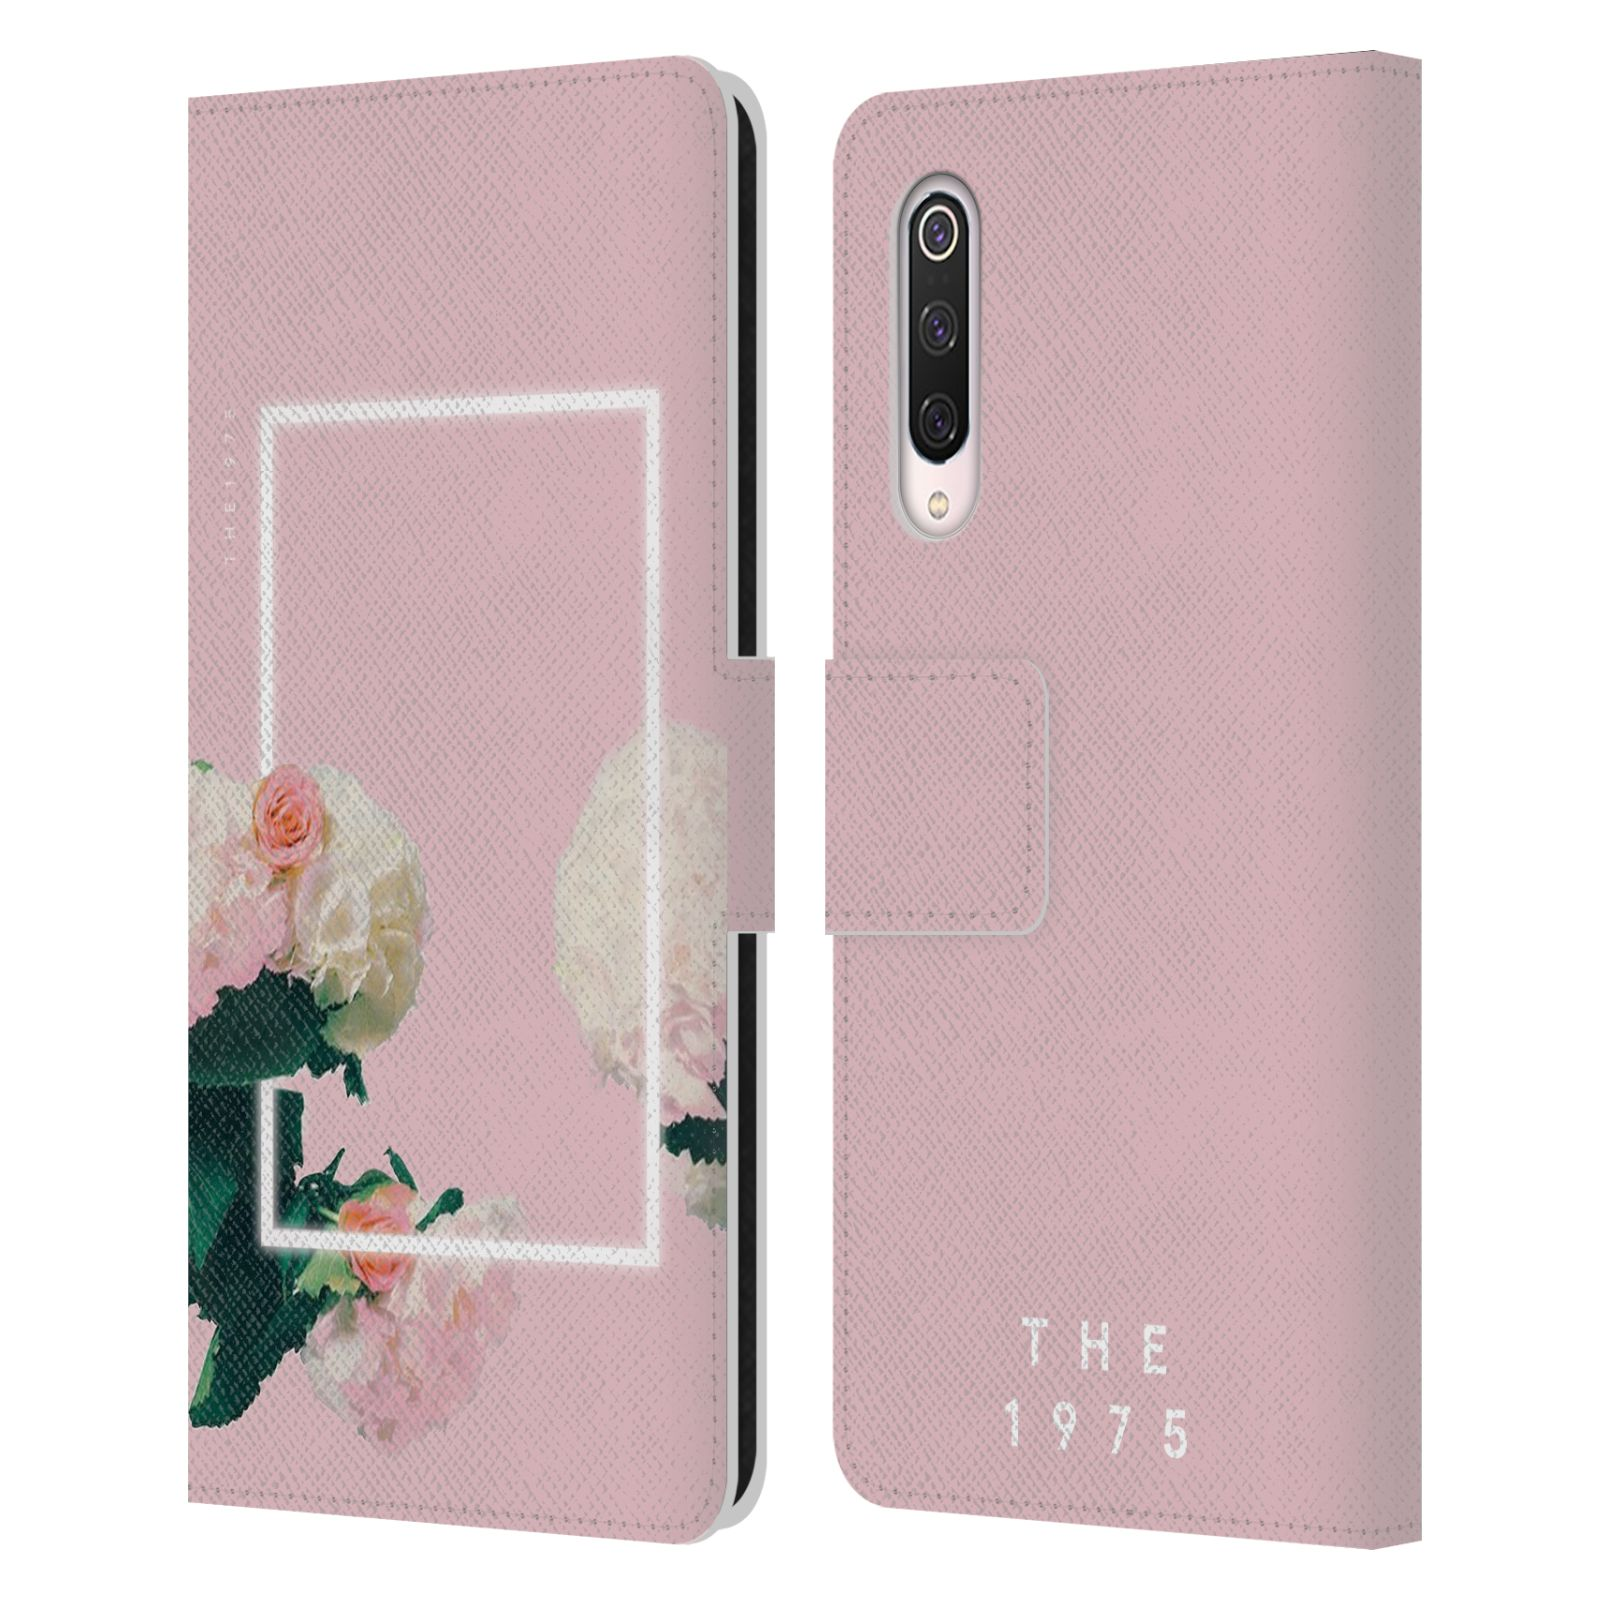 Official The 1975 Key Art Roses Pink Leather Book Wallet Case For Xiaomi Mi 9 Pro / 5G